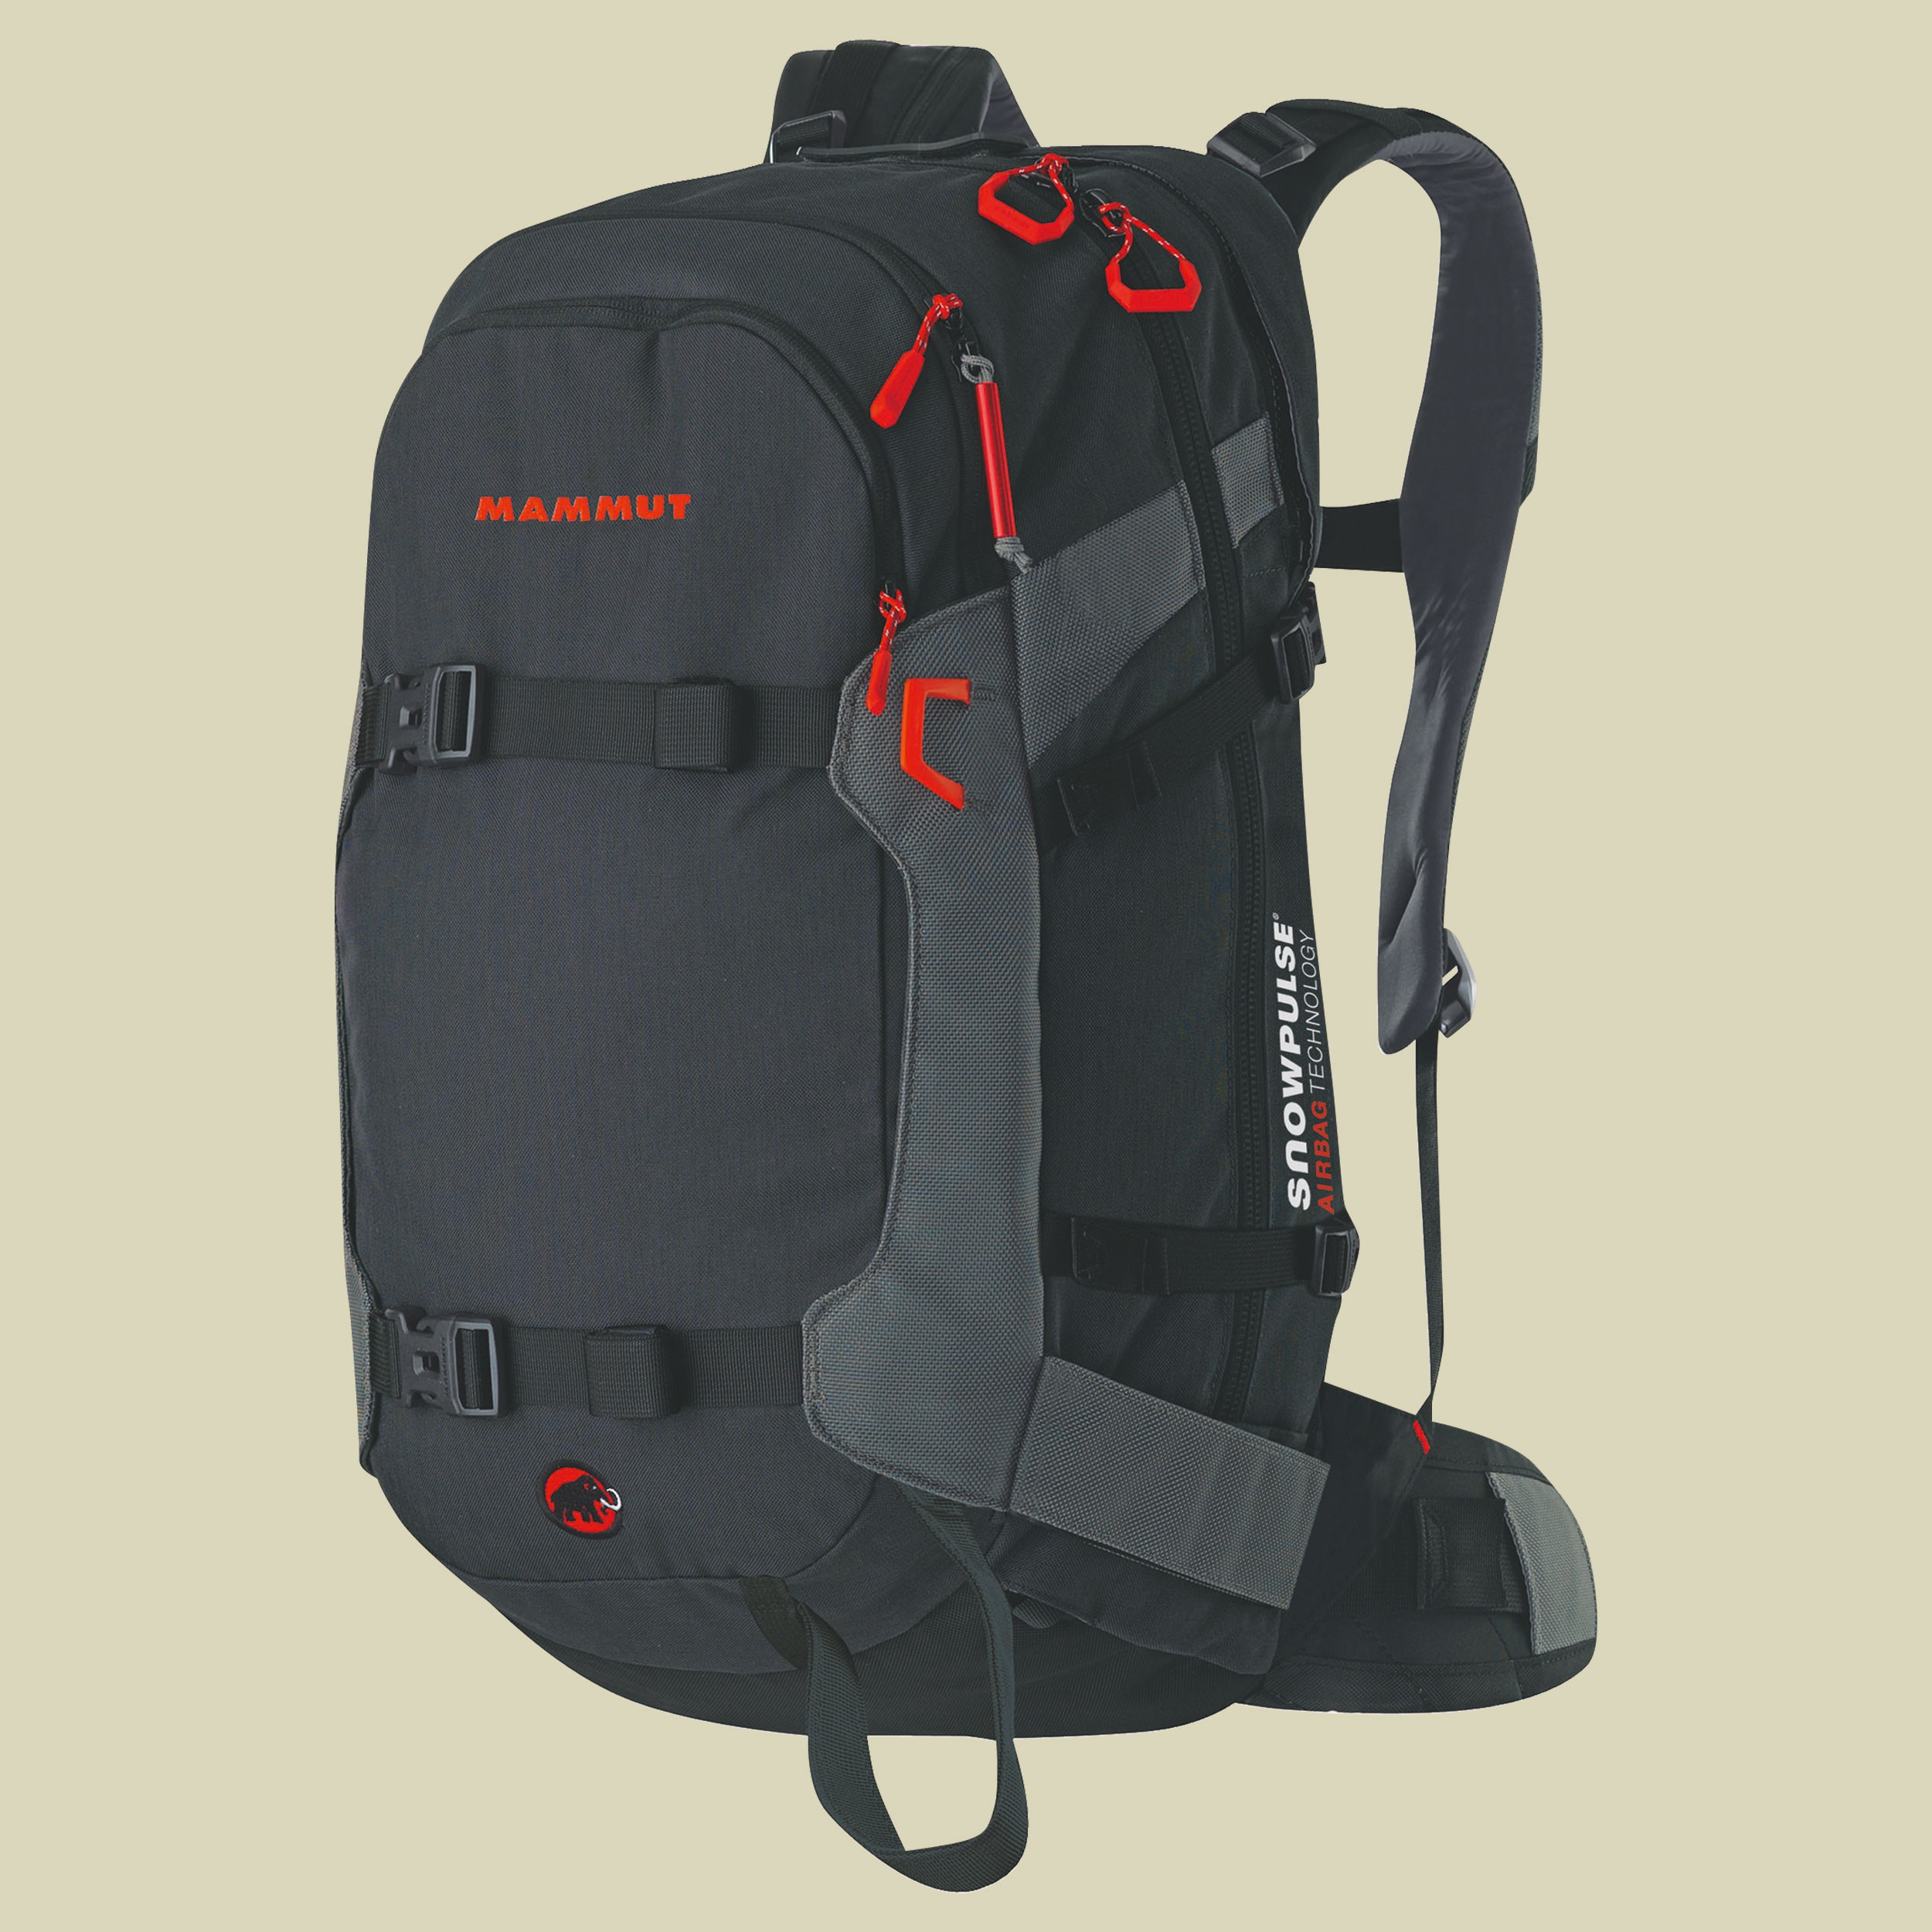 Ride Removable Airbag Set